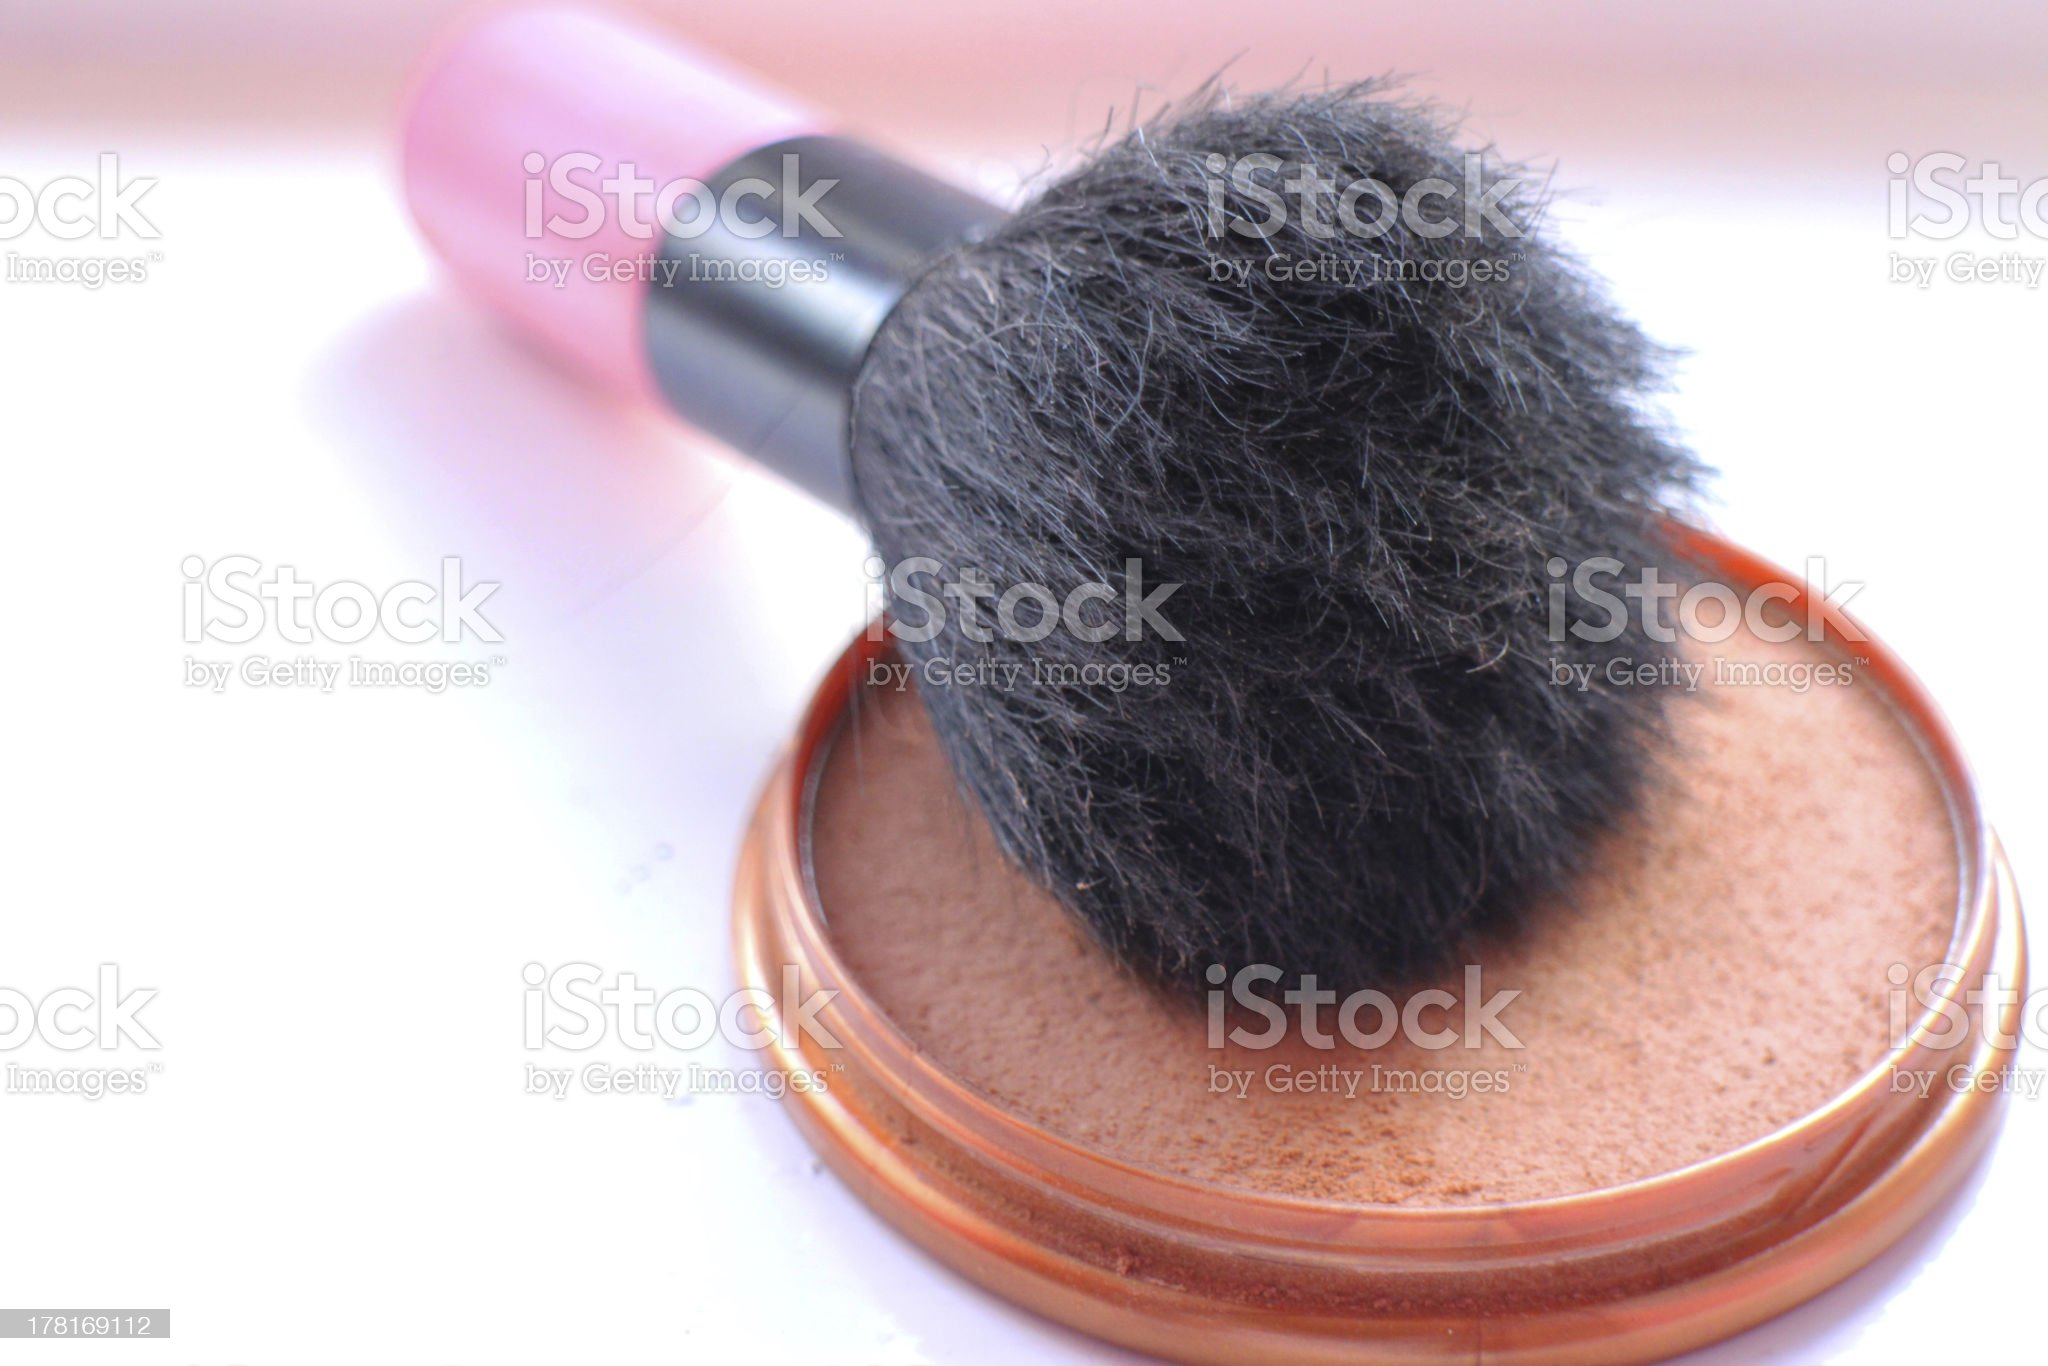 Well-used make up brush with powder. royalty-free stock photo